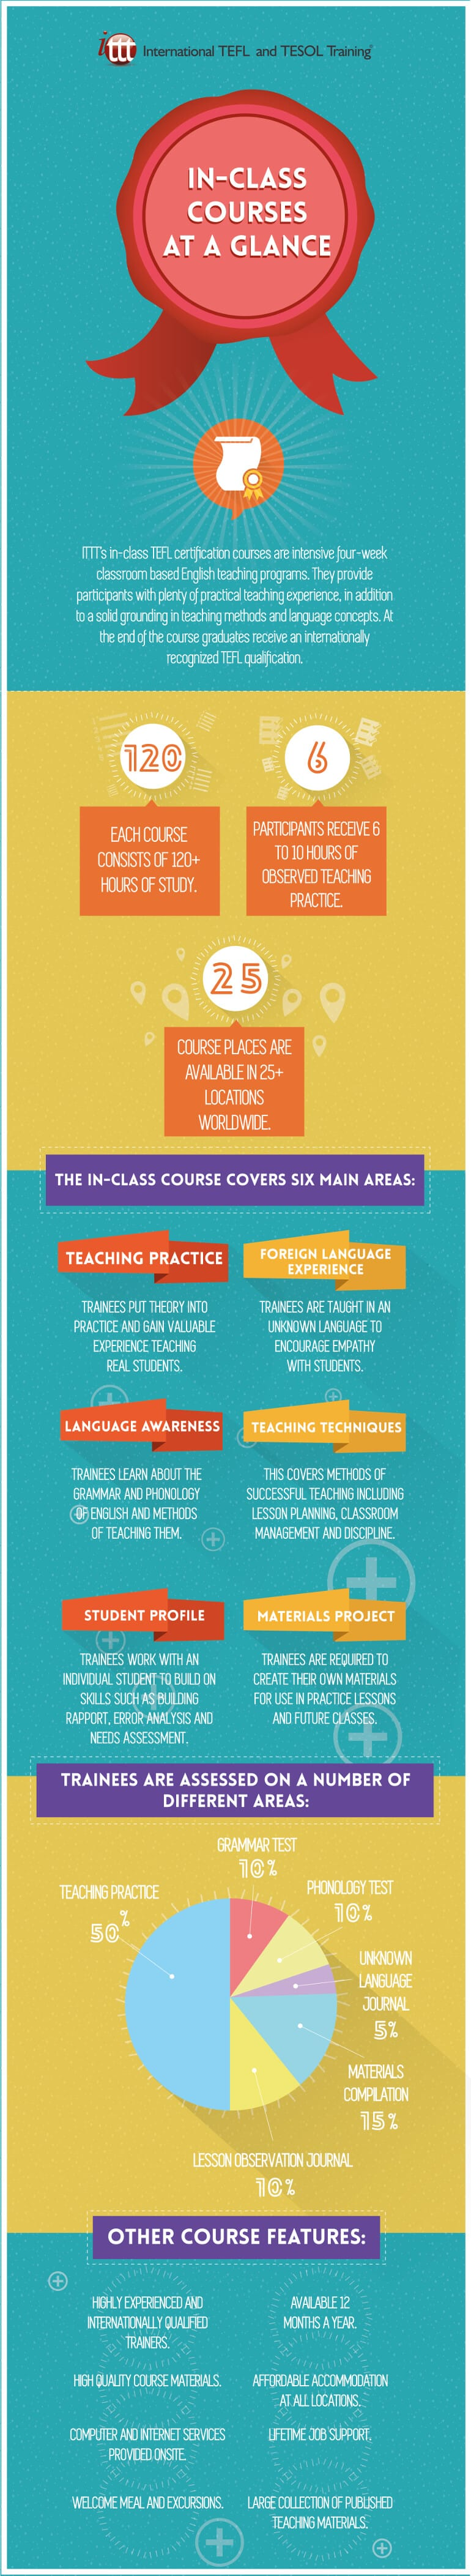 Infographic TEFL In-class Course